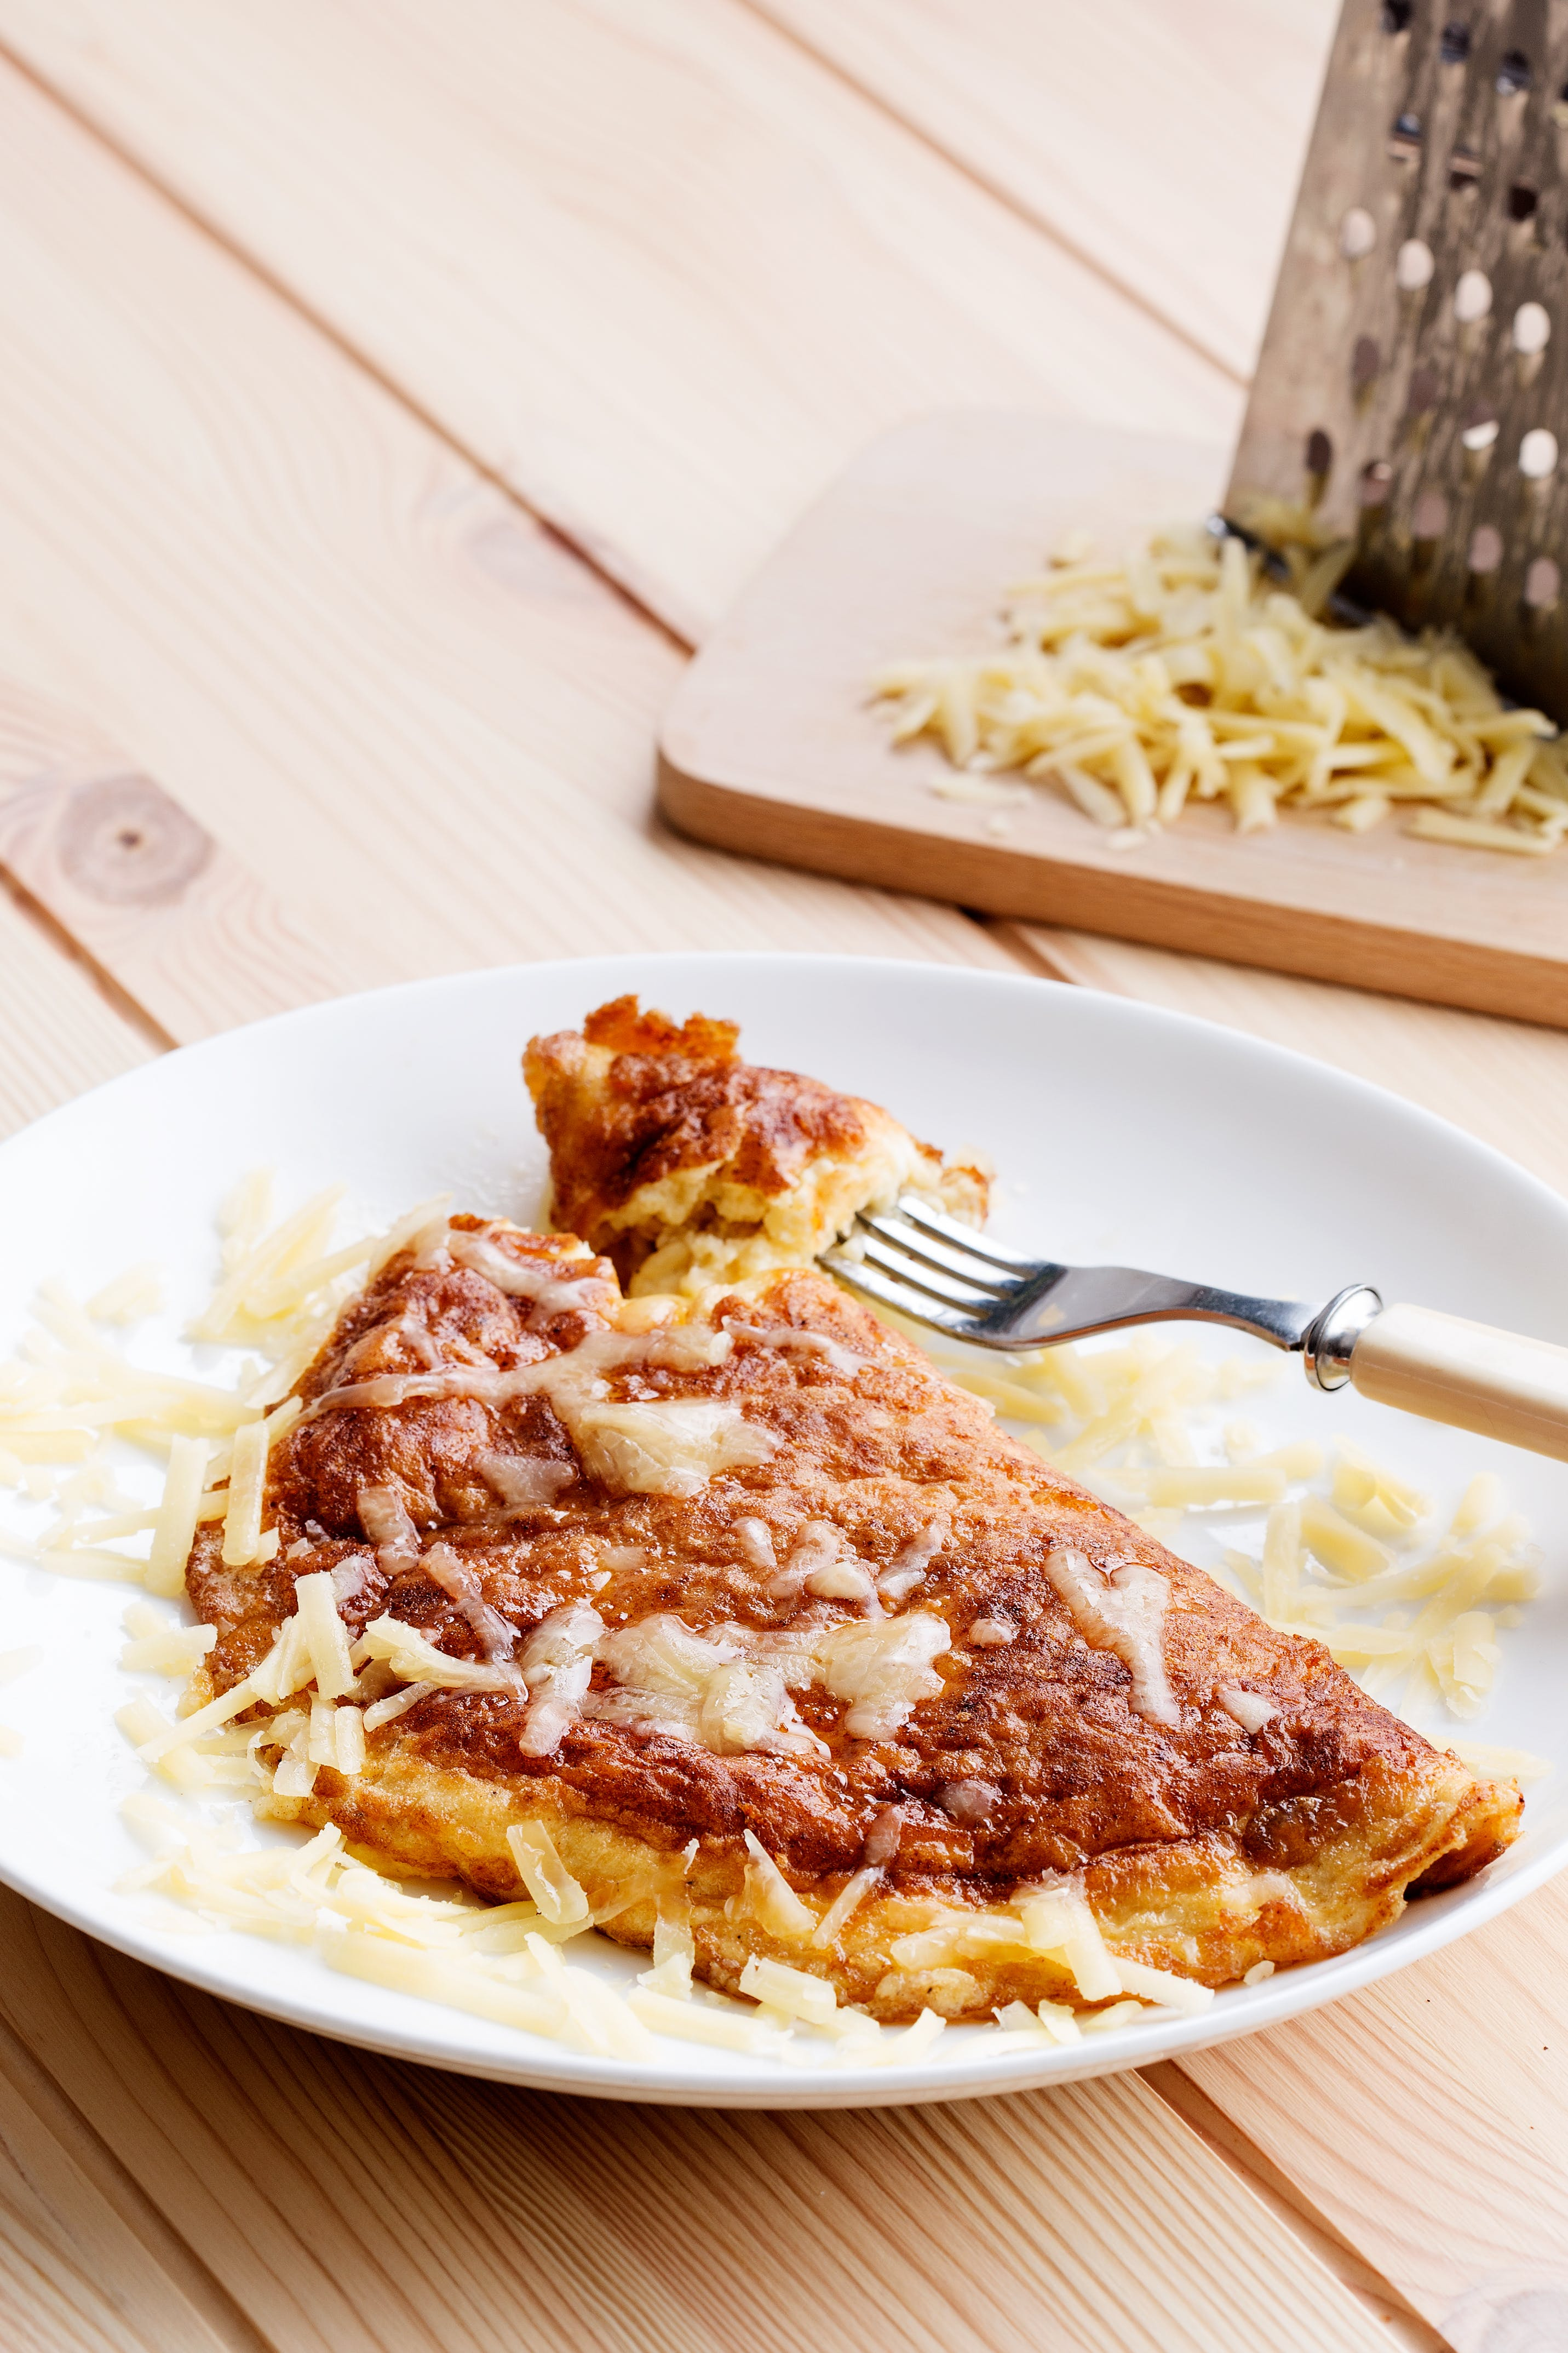 Keto cheese omelet